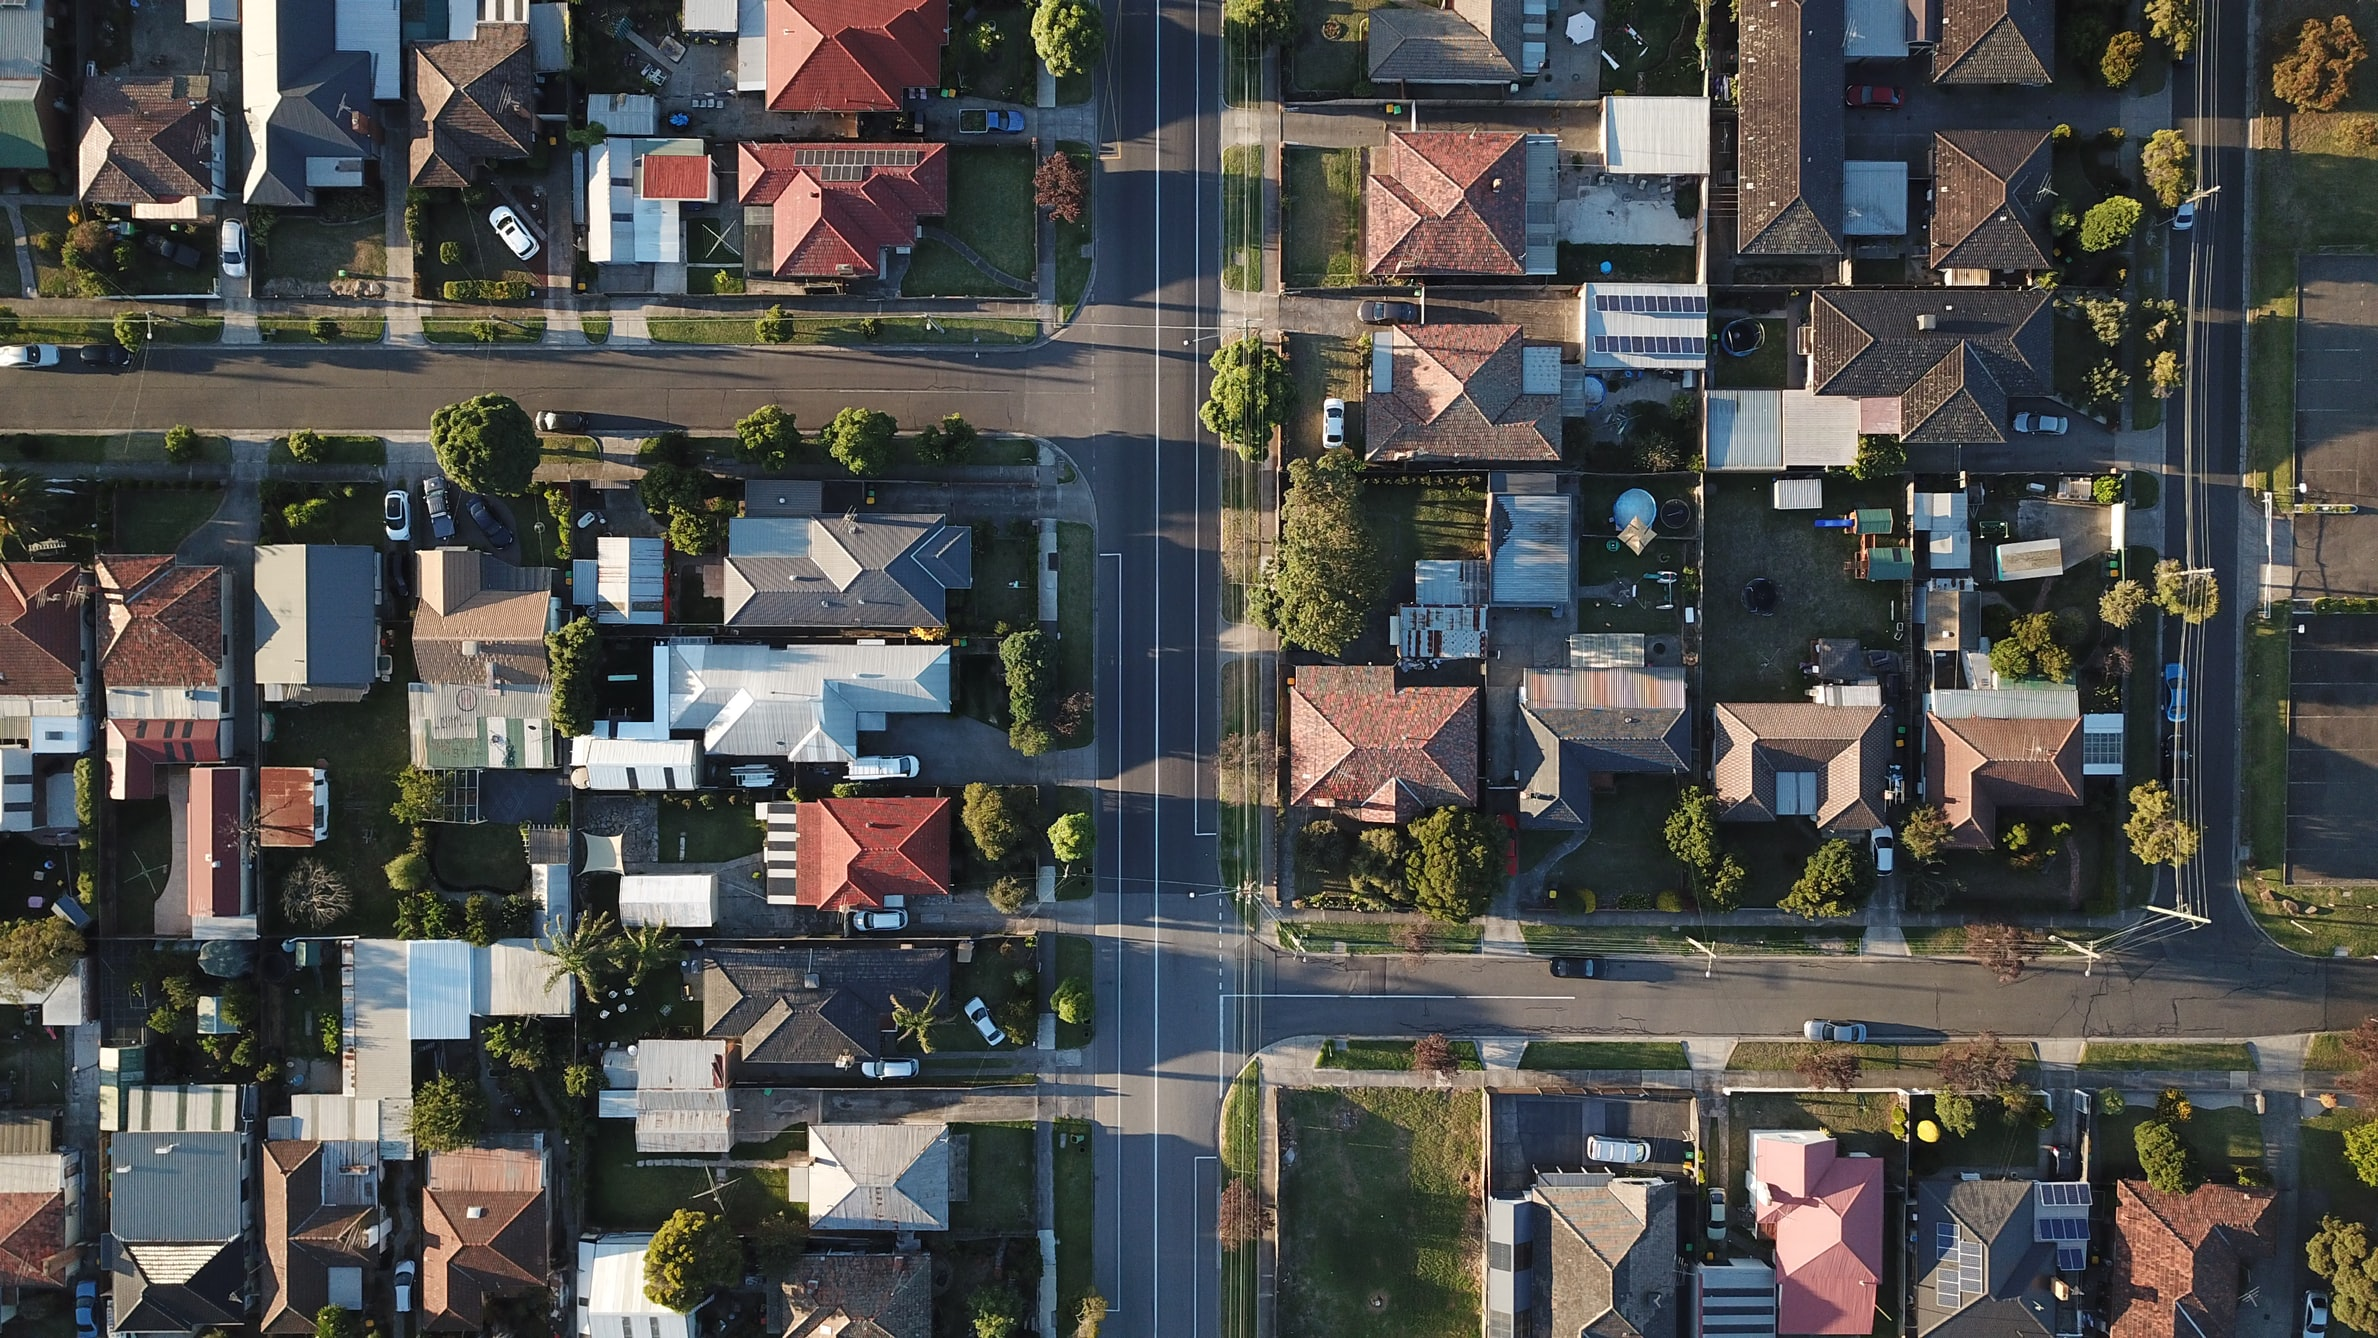 An aerial view of suburbs.